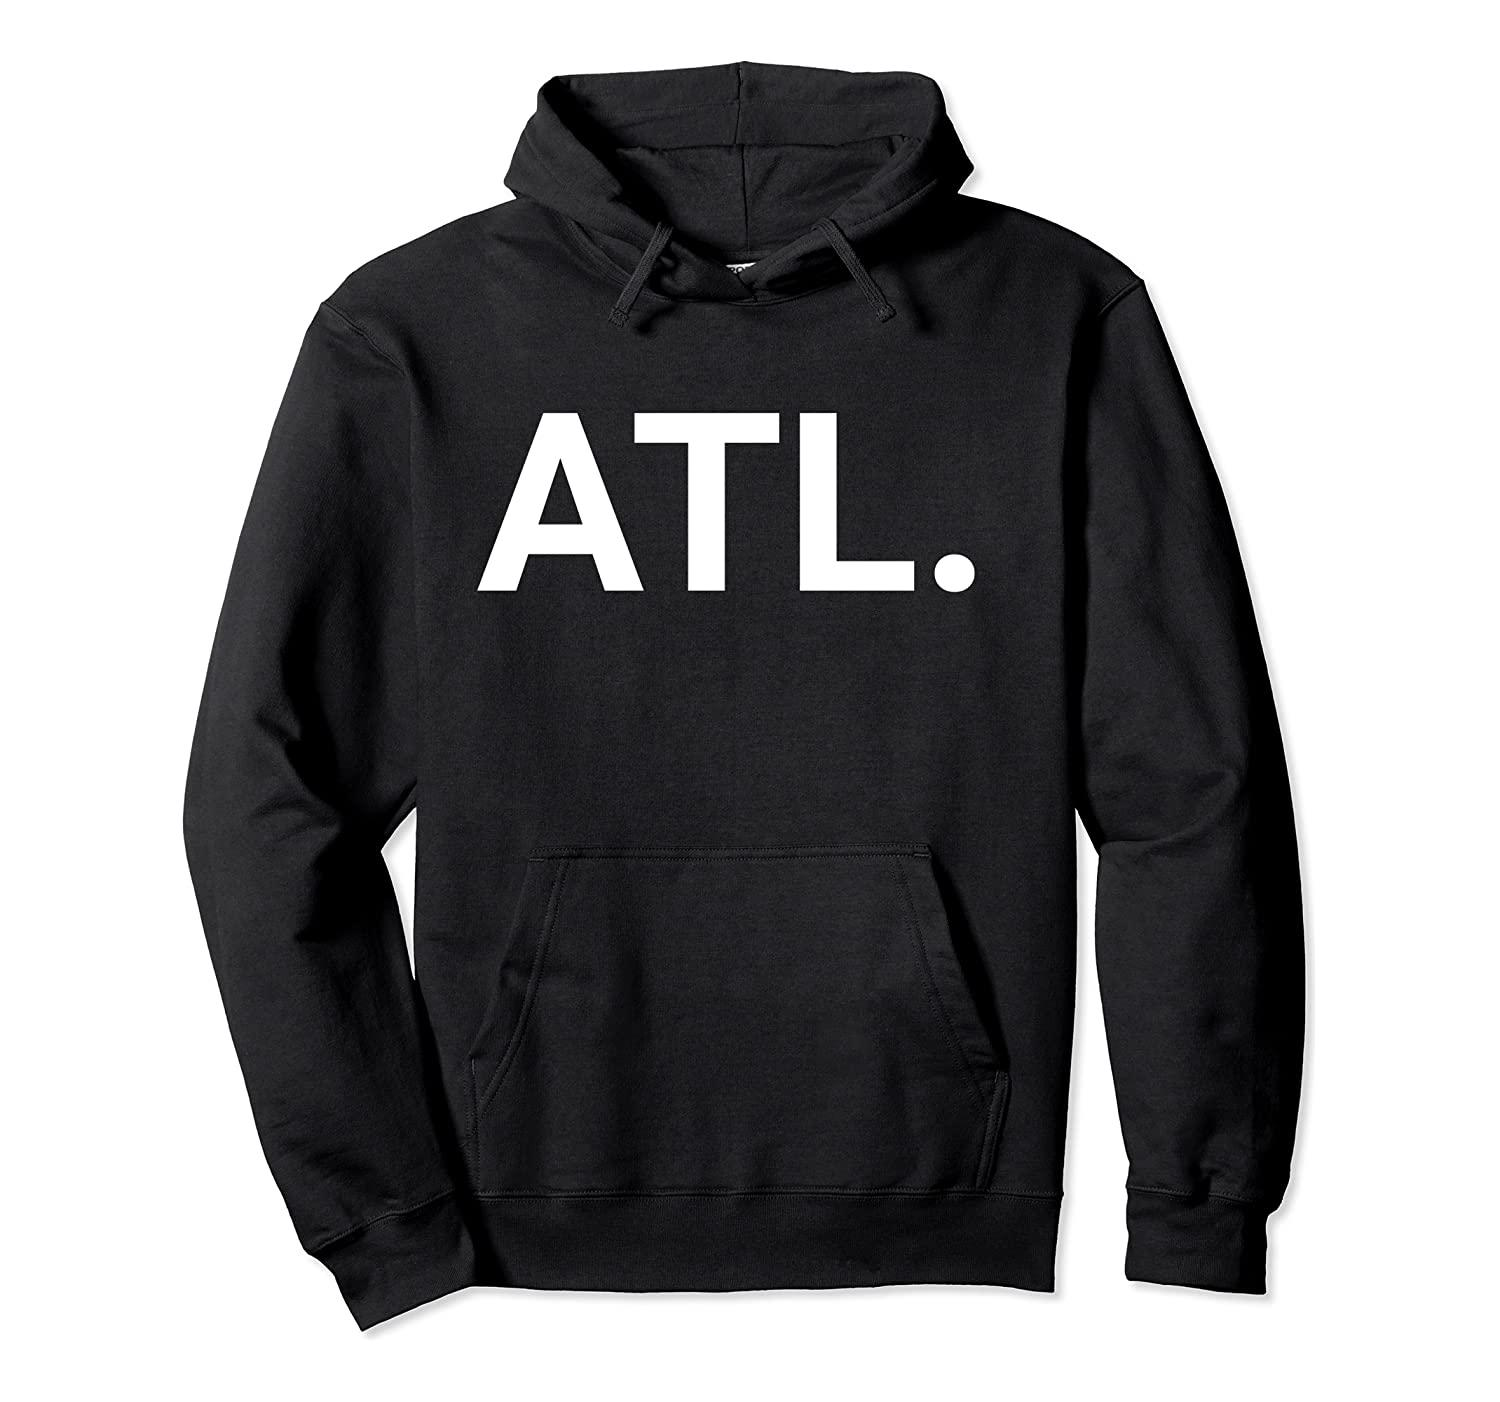 Shirt ATL con cappuccio unisex S-5XL Nero / Grigio / Navy / Royal Blue / scuro Heather Atlanta in Georgia